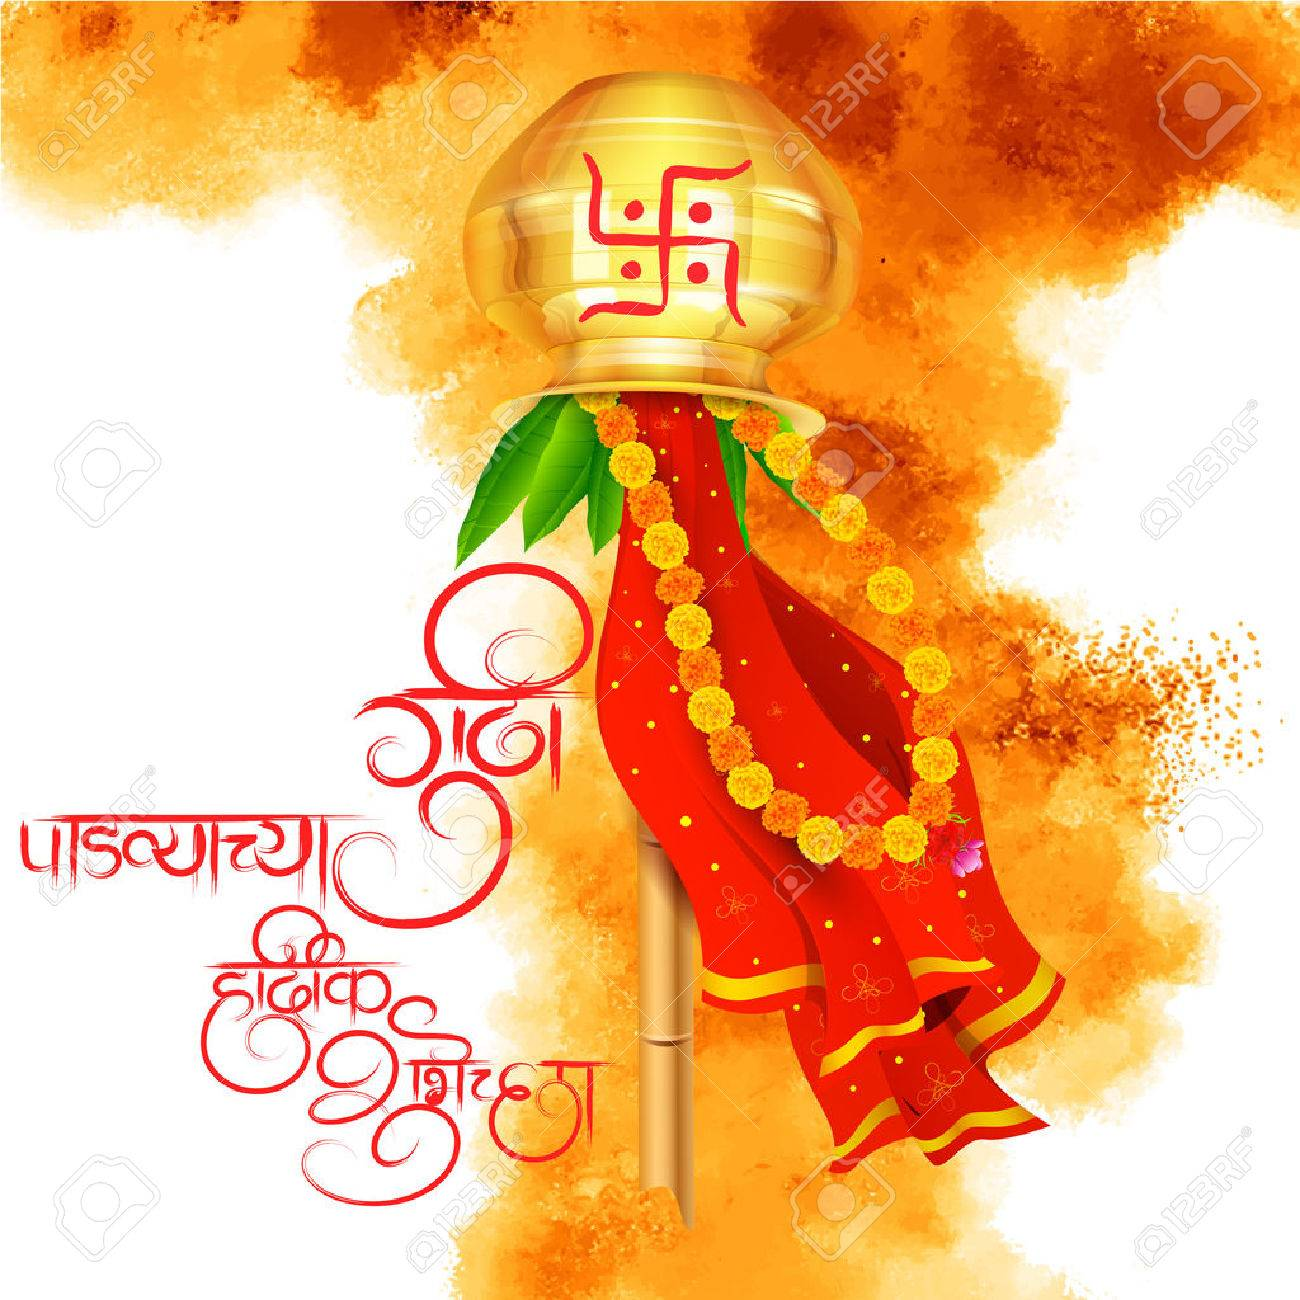 Illustration of gudi padwa lunar new year celebration of illustration of gudi padwa lunar new year celebration of india with message in marathi m4hsunfo